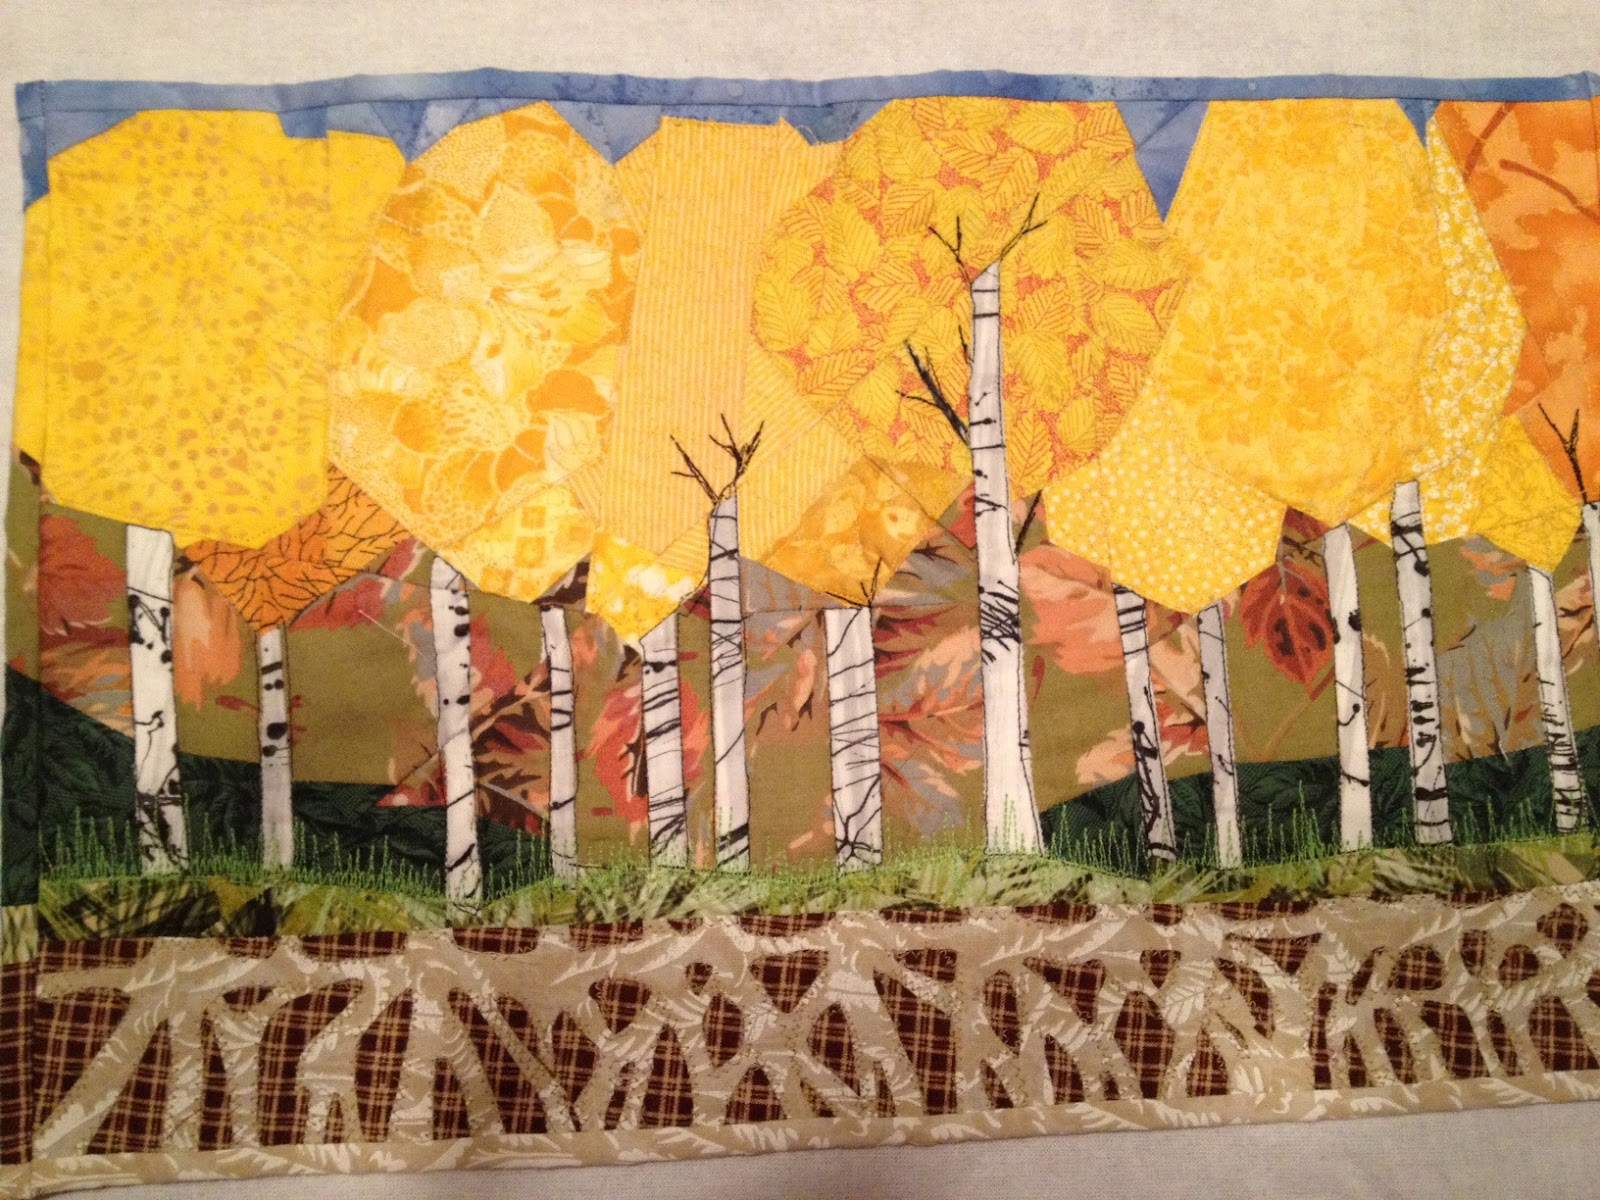 a collage of a shared root system of yellow aspen trees